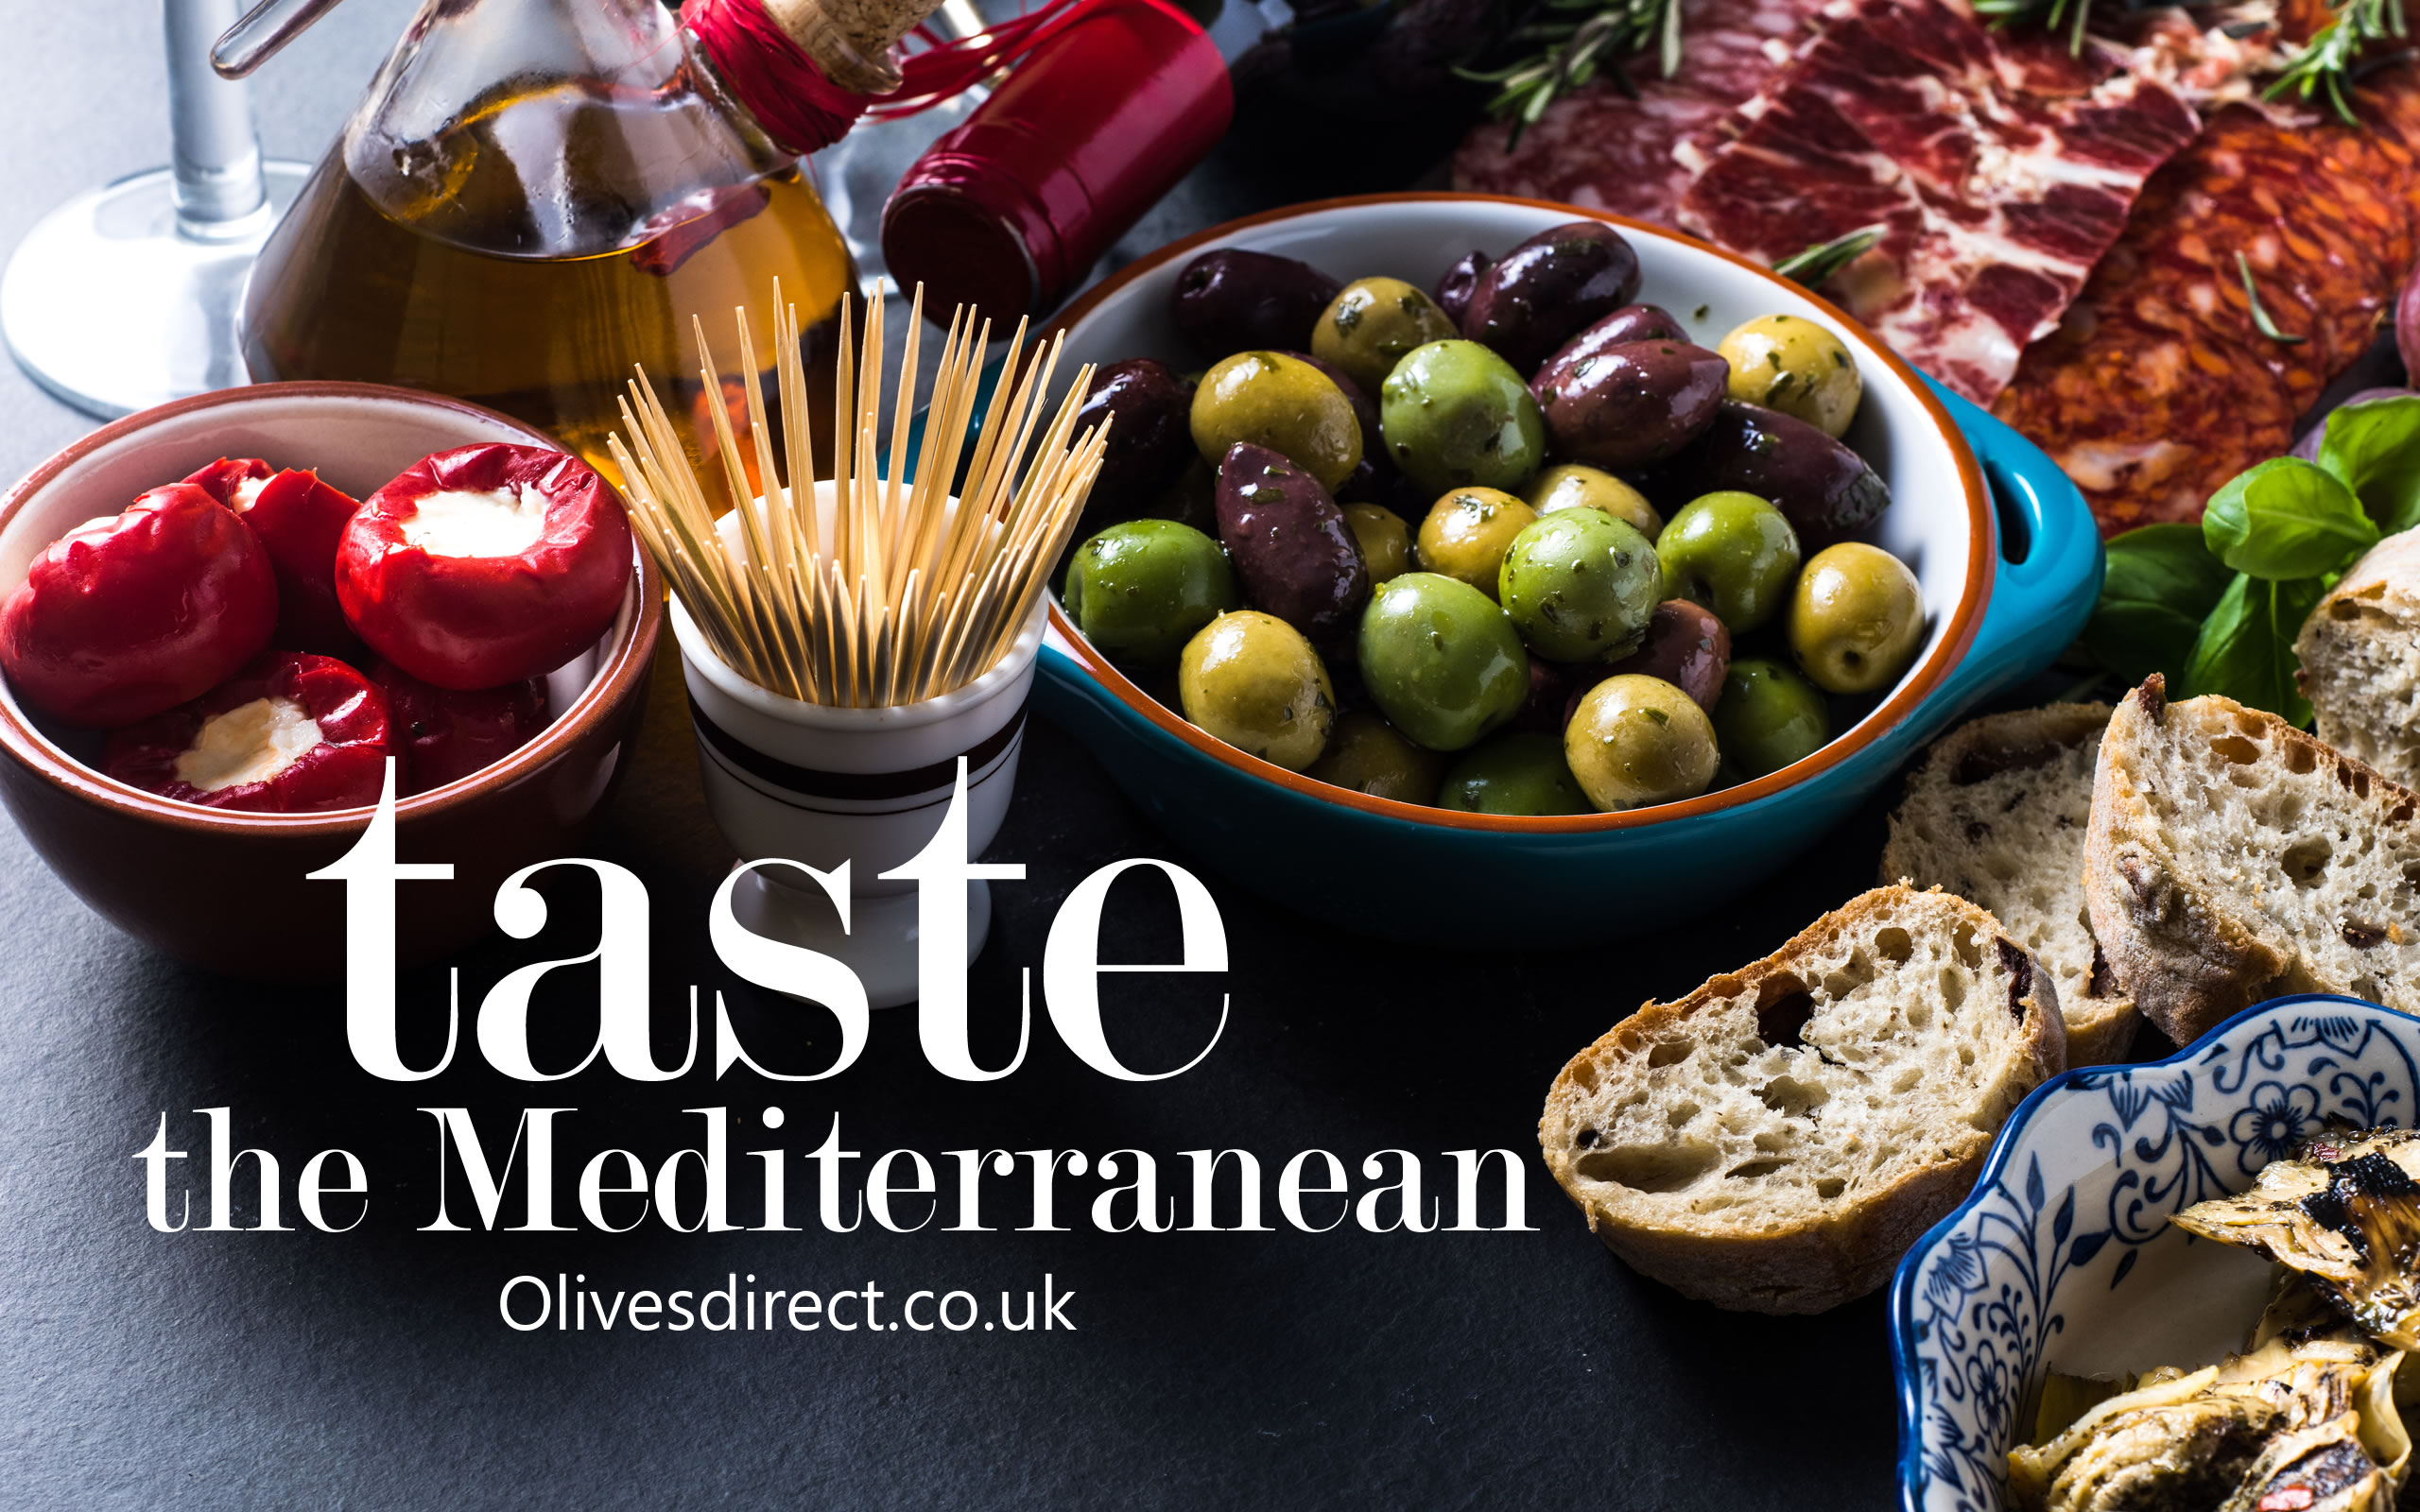 Olives, Anti Pasti, Oils and Vinegars from Olives Direct